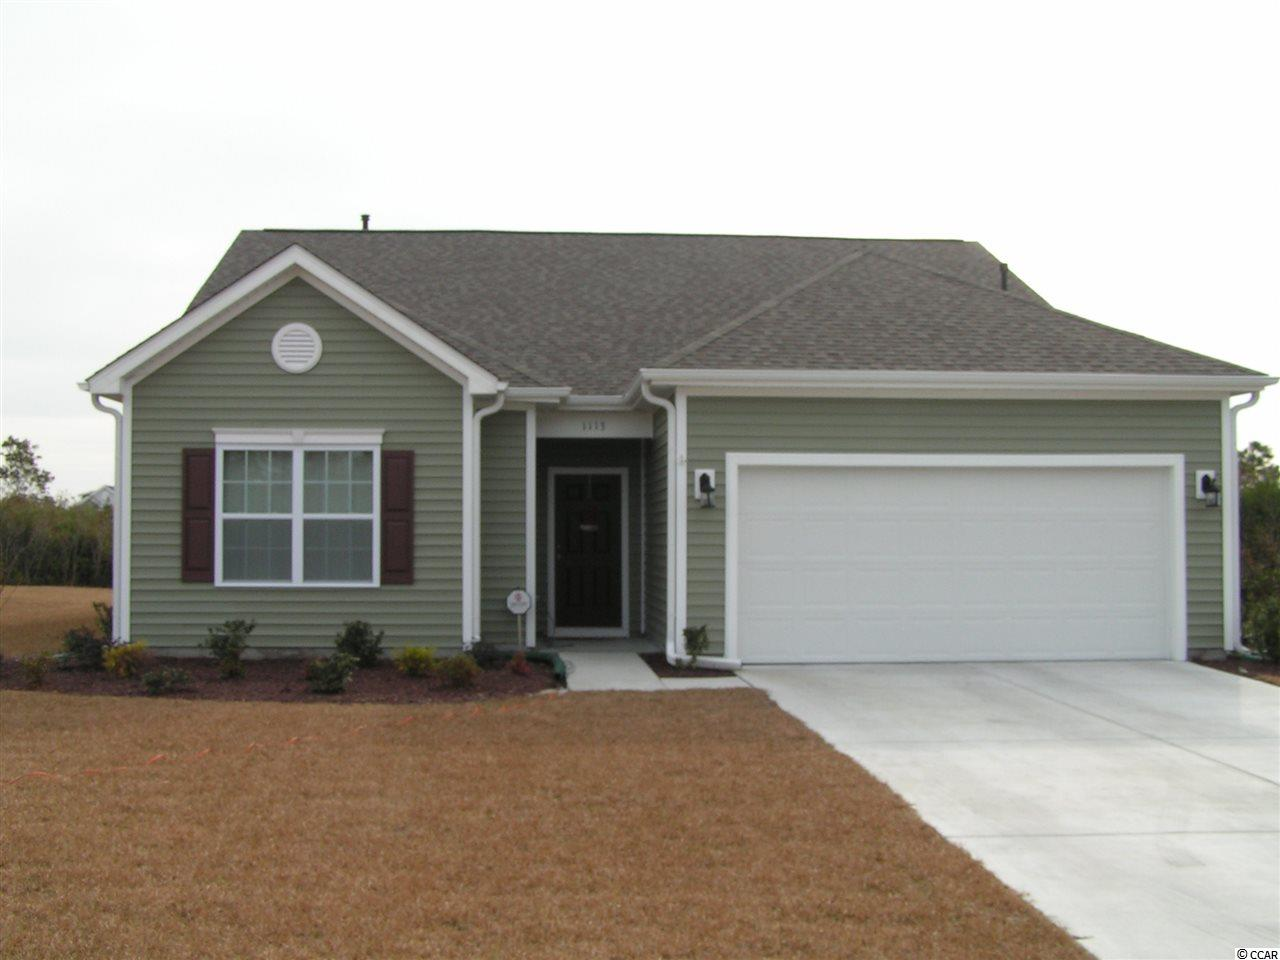 1113 Dalmore ct, Conway, SC 29526